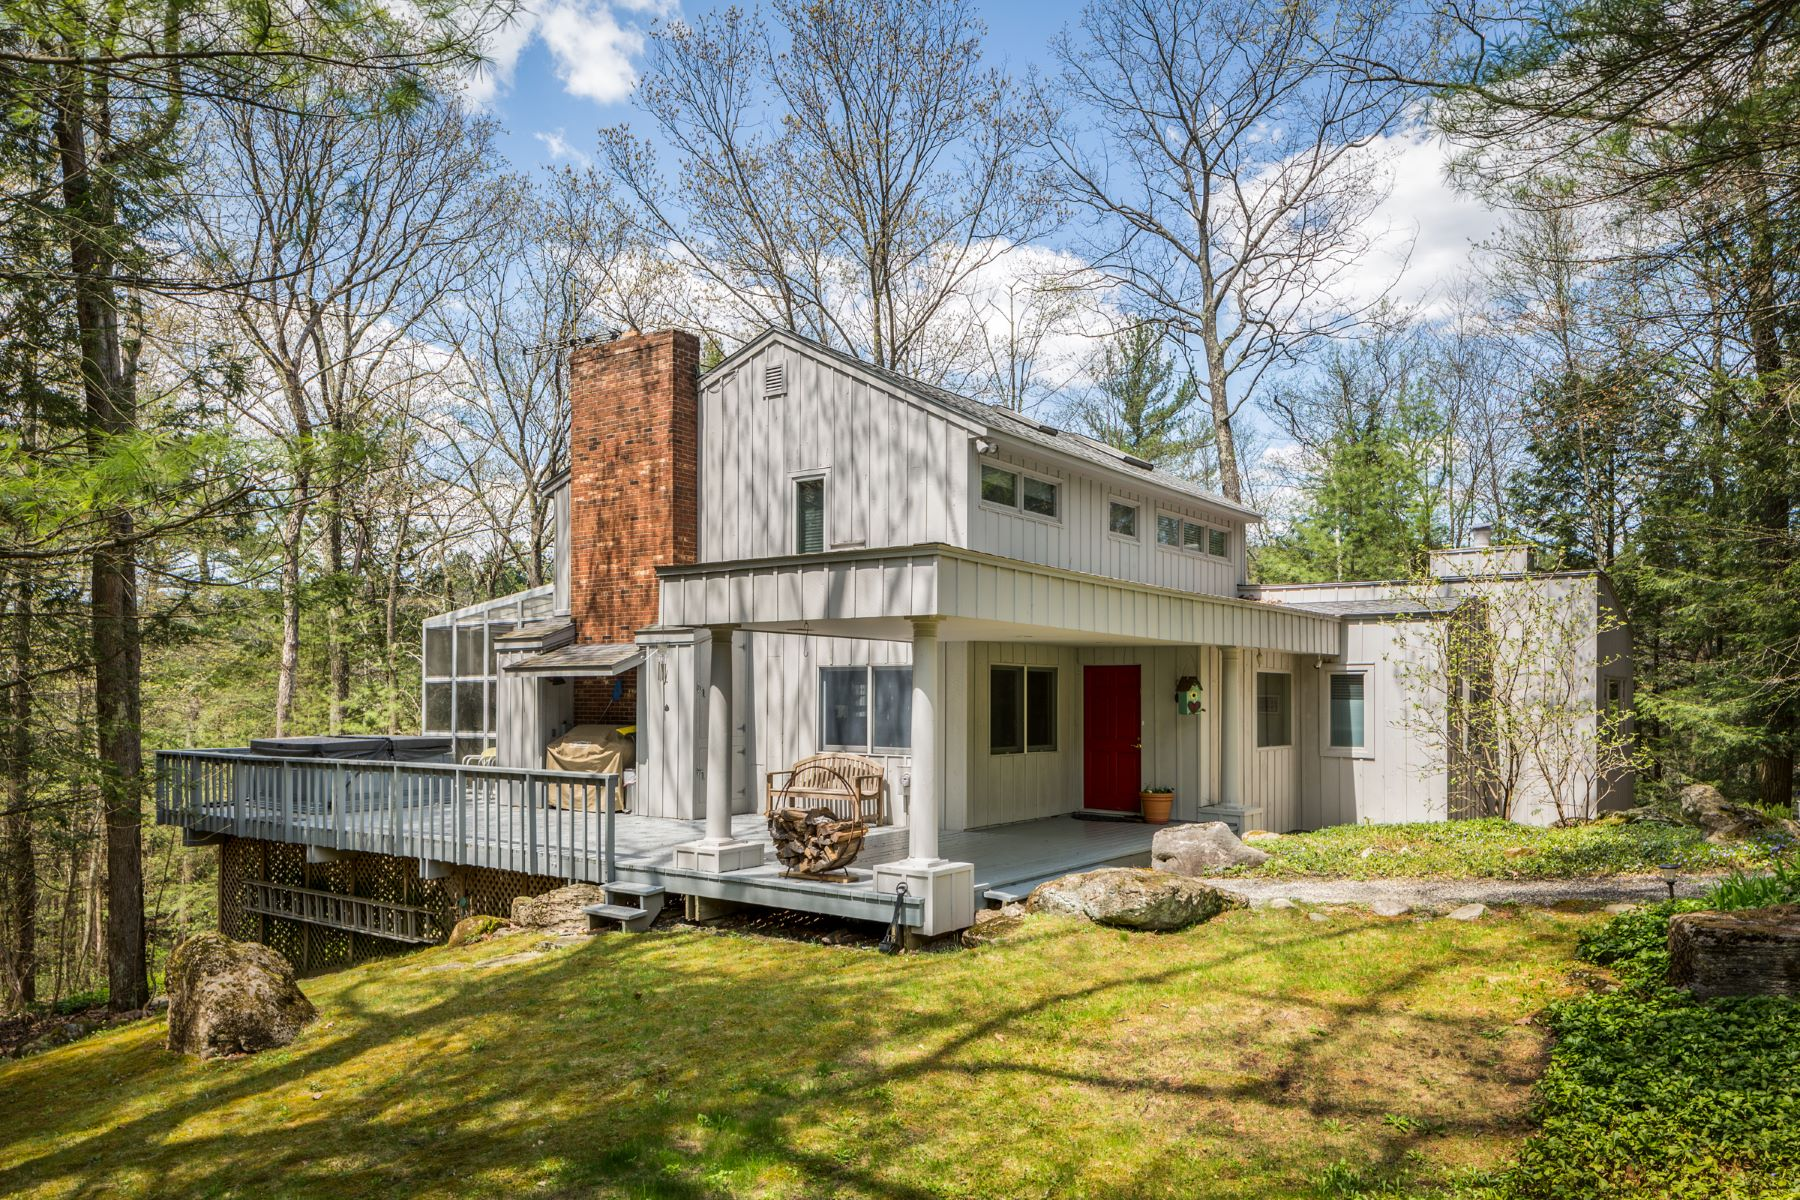 Single Family Home for Active at Serenity on 8.9 Private Acres 4 Castle Hill Rd Stockbridge, Massachusetts 01262 United States